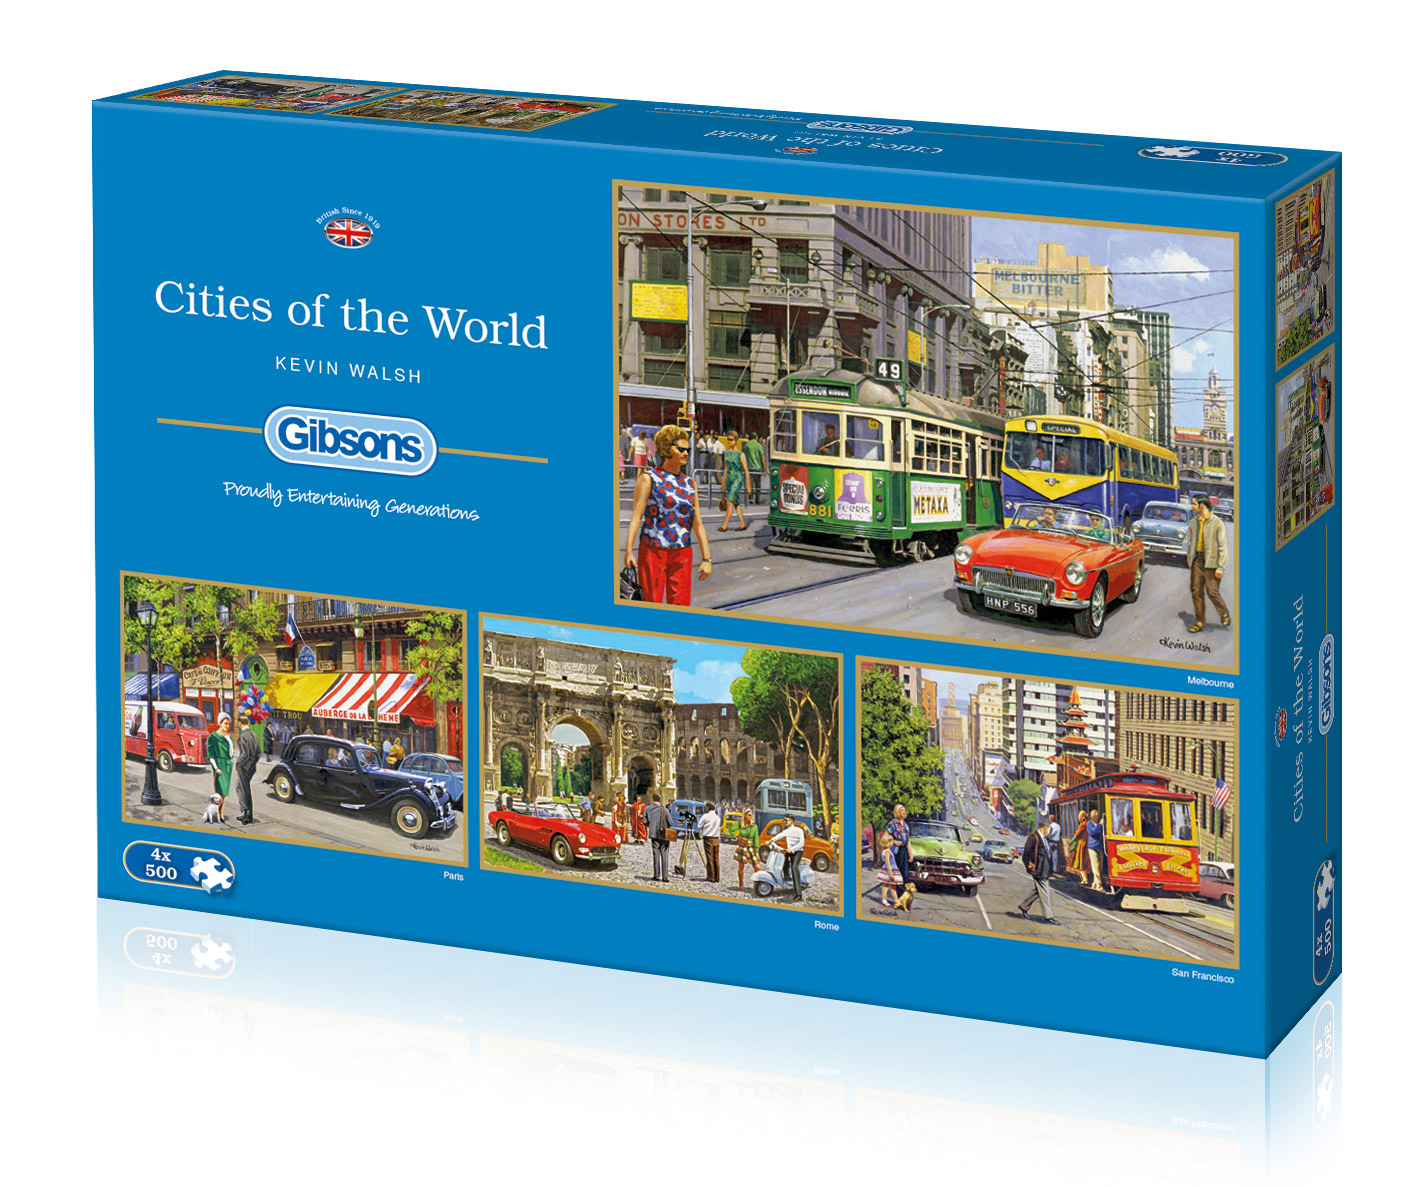 Cities of the World 4 x 500 Box puzzle set